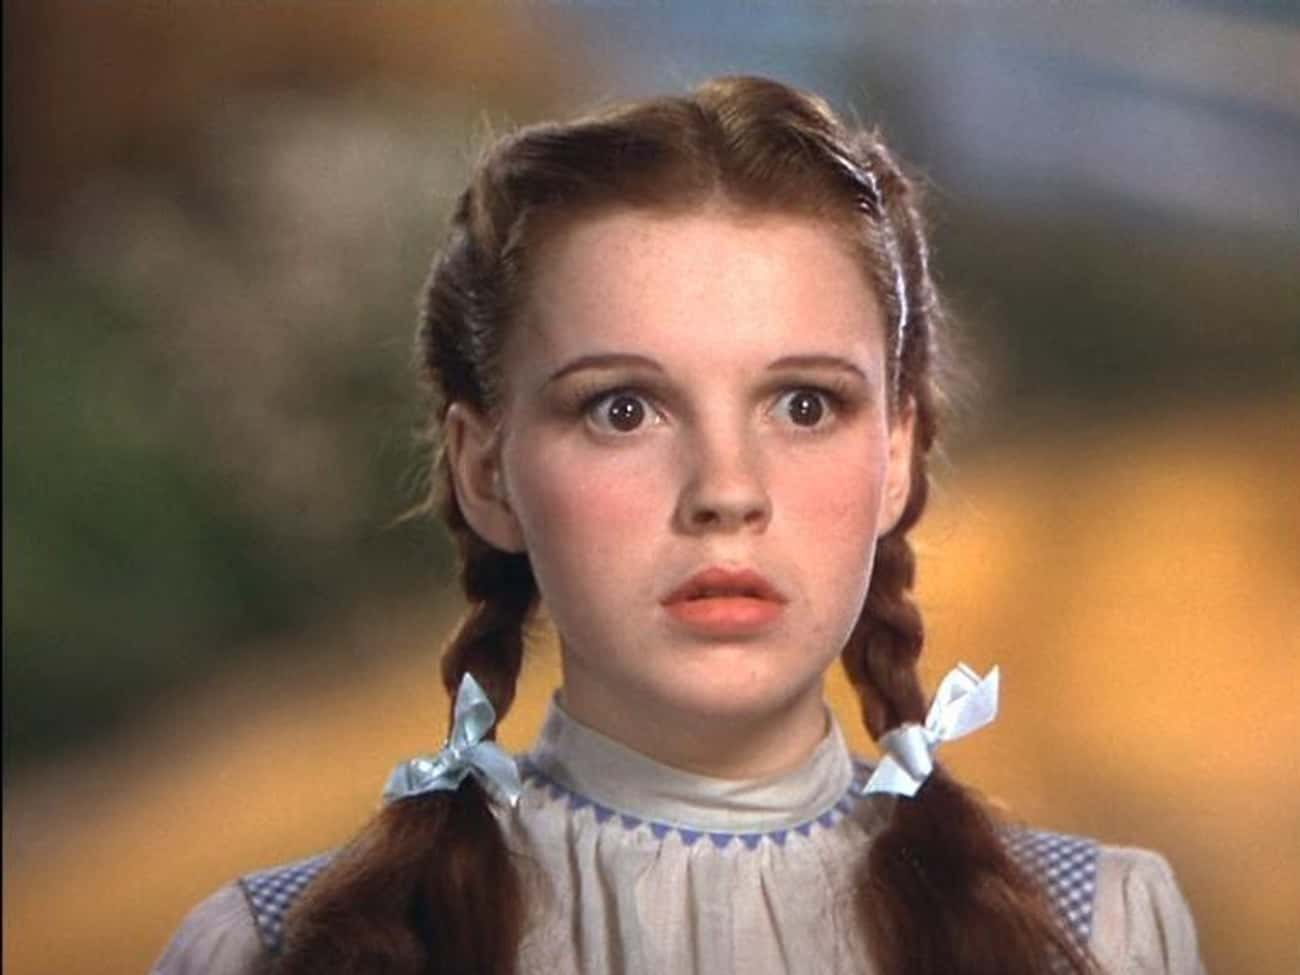 Dorothy Represents The Average American